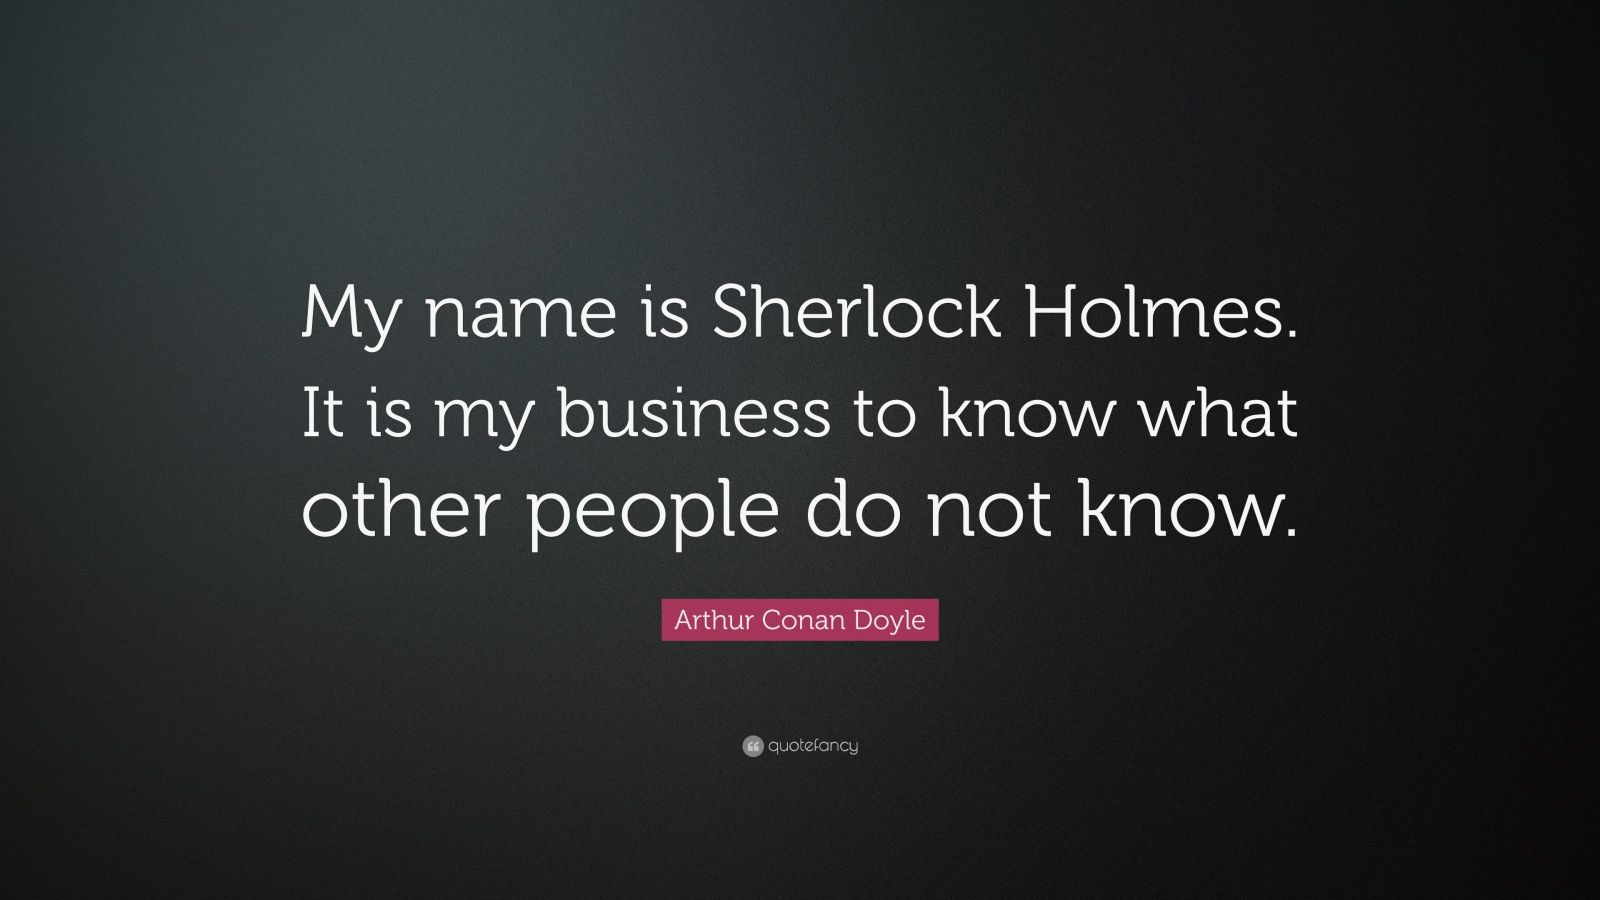 High Quality Arthur Conan Doyle Quote: U201cMy Name Is Sherlock Holmes. It Is My Business